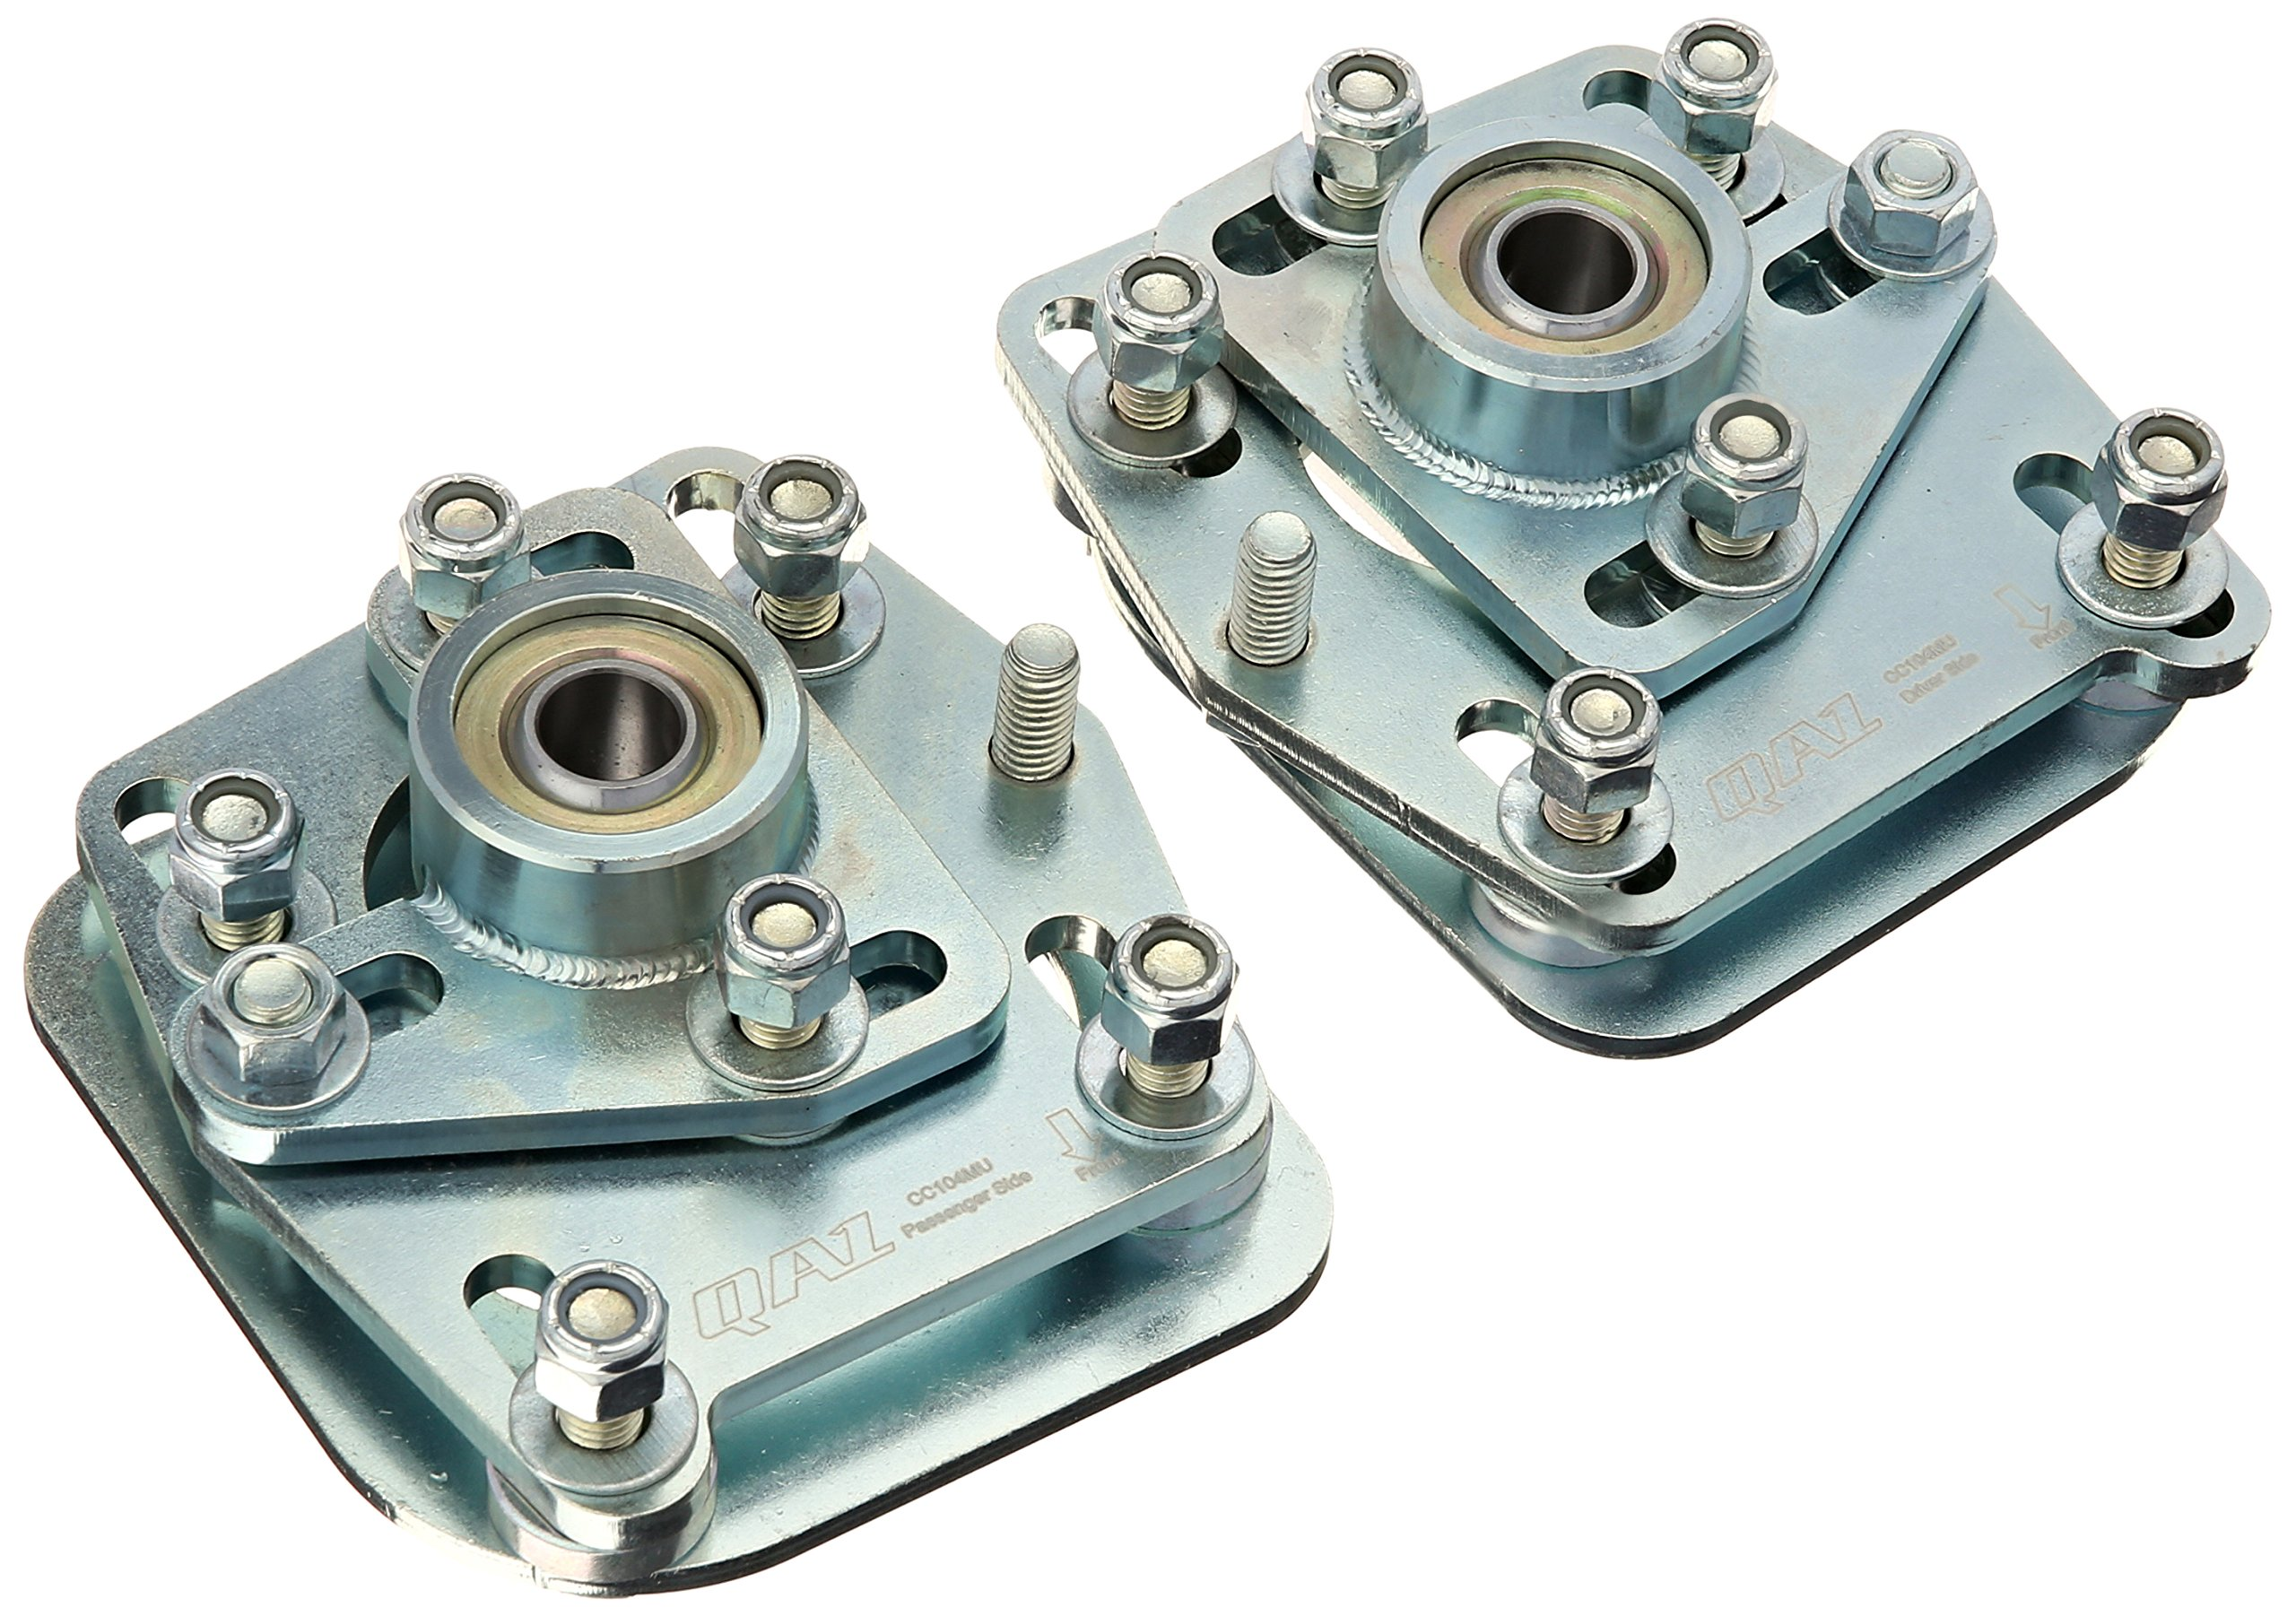 QA1 CC104MU Caster/Camber Plate for Mustang by QA1 (Image #1)